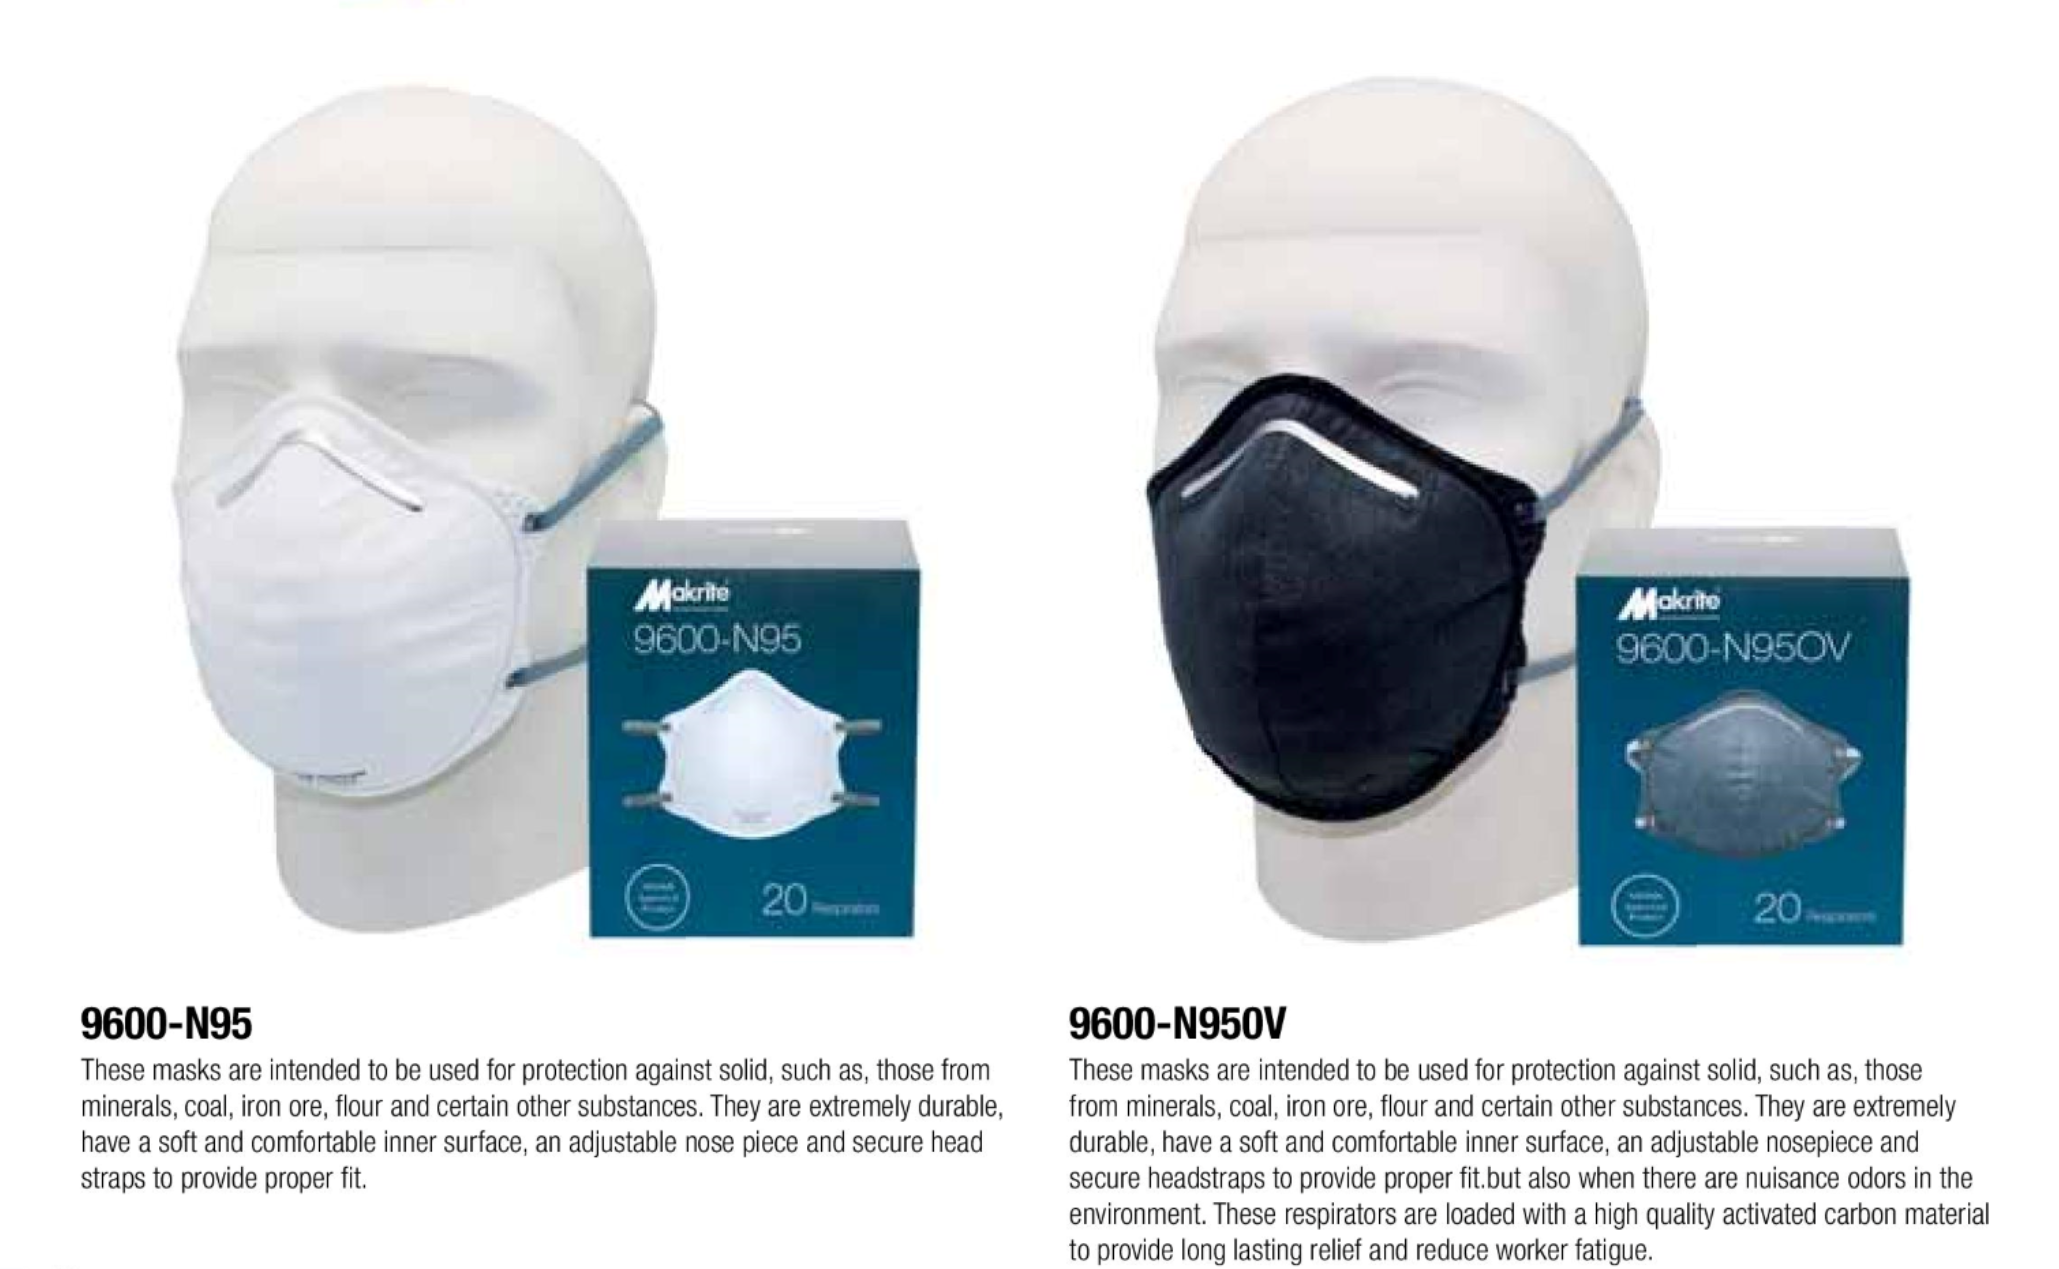 Makrite N9600 Disposable Mask Image